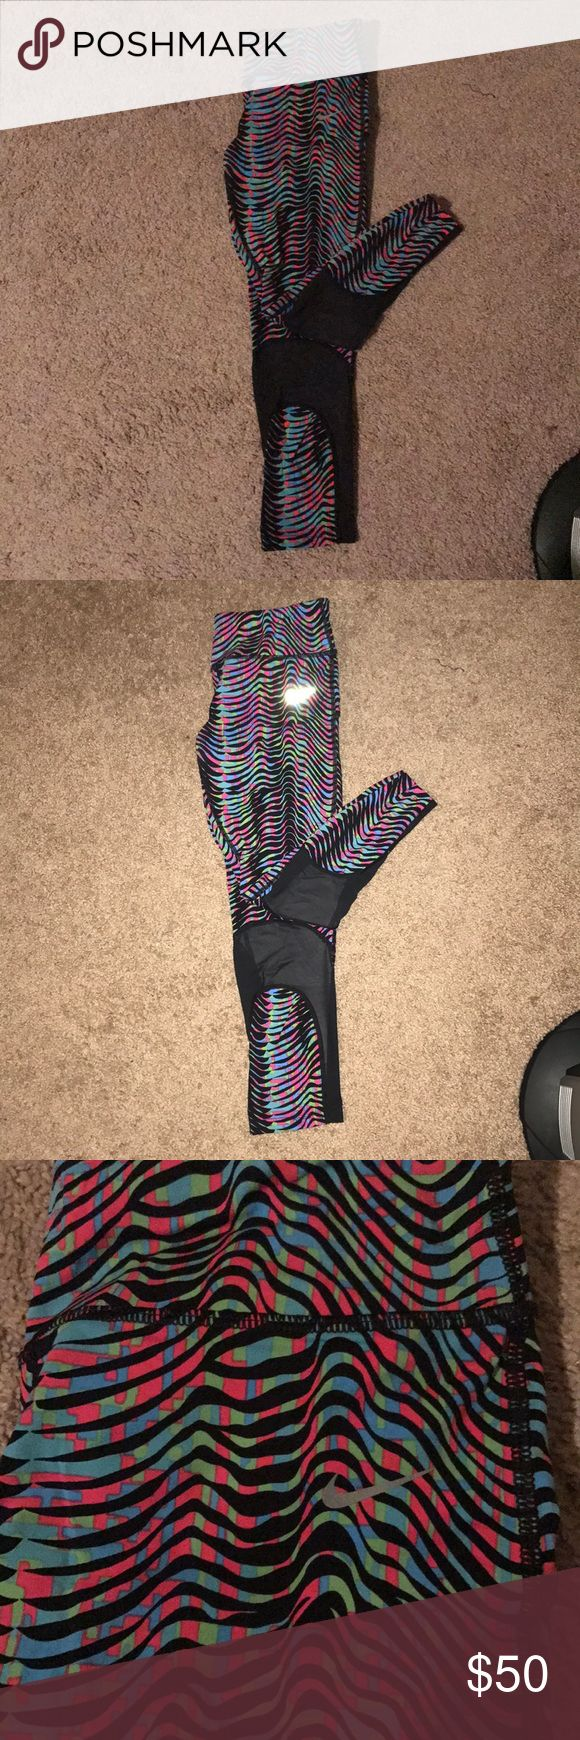 Nike running leggings Tight Nike running leggings. Has sheer potion in calf. Can model upon request. One of my fav pairs of leggings, but trying to spring clean. Funky color pattern, nice switch up from the classic black leggings. Nike Pants Leggings